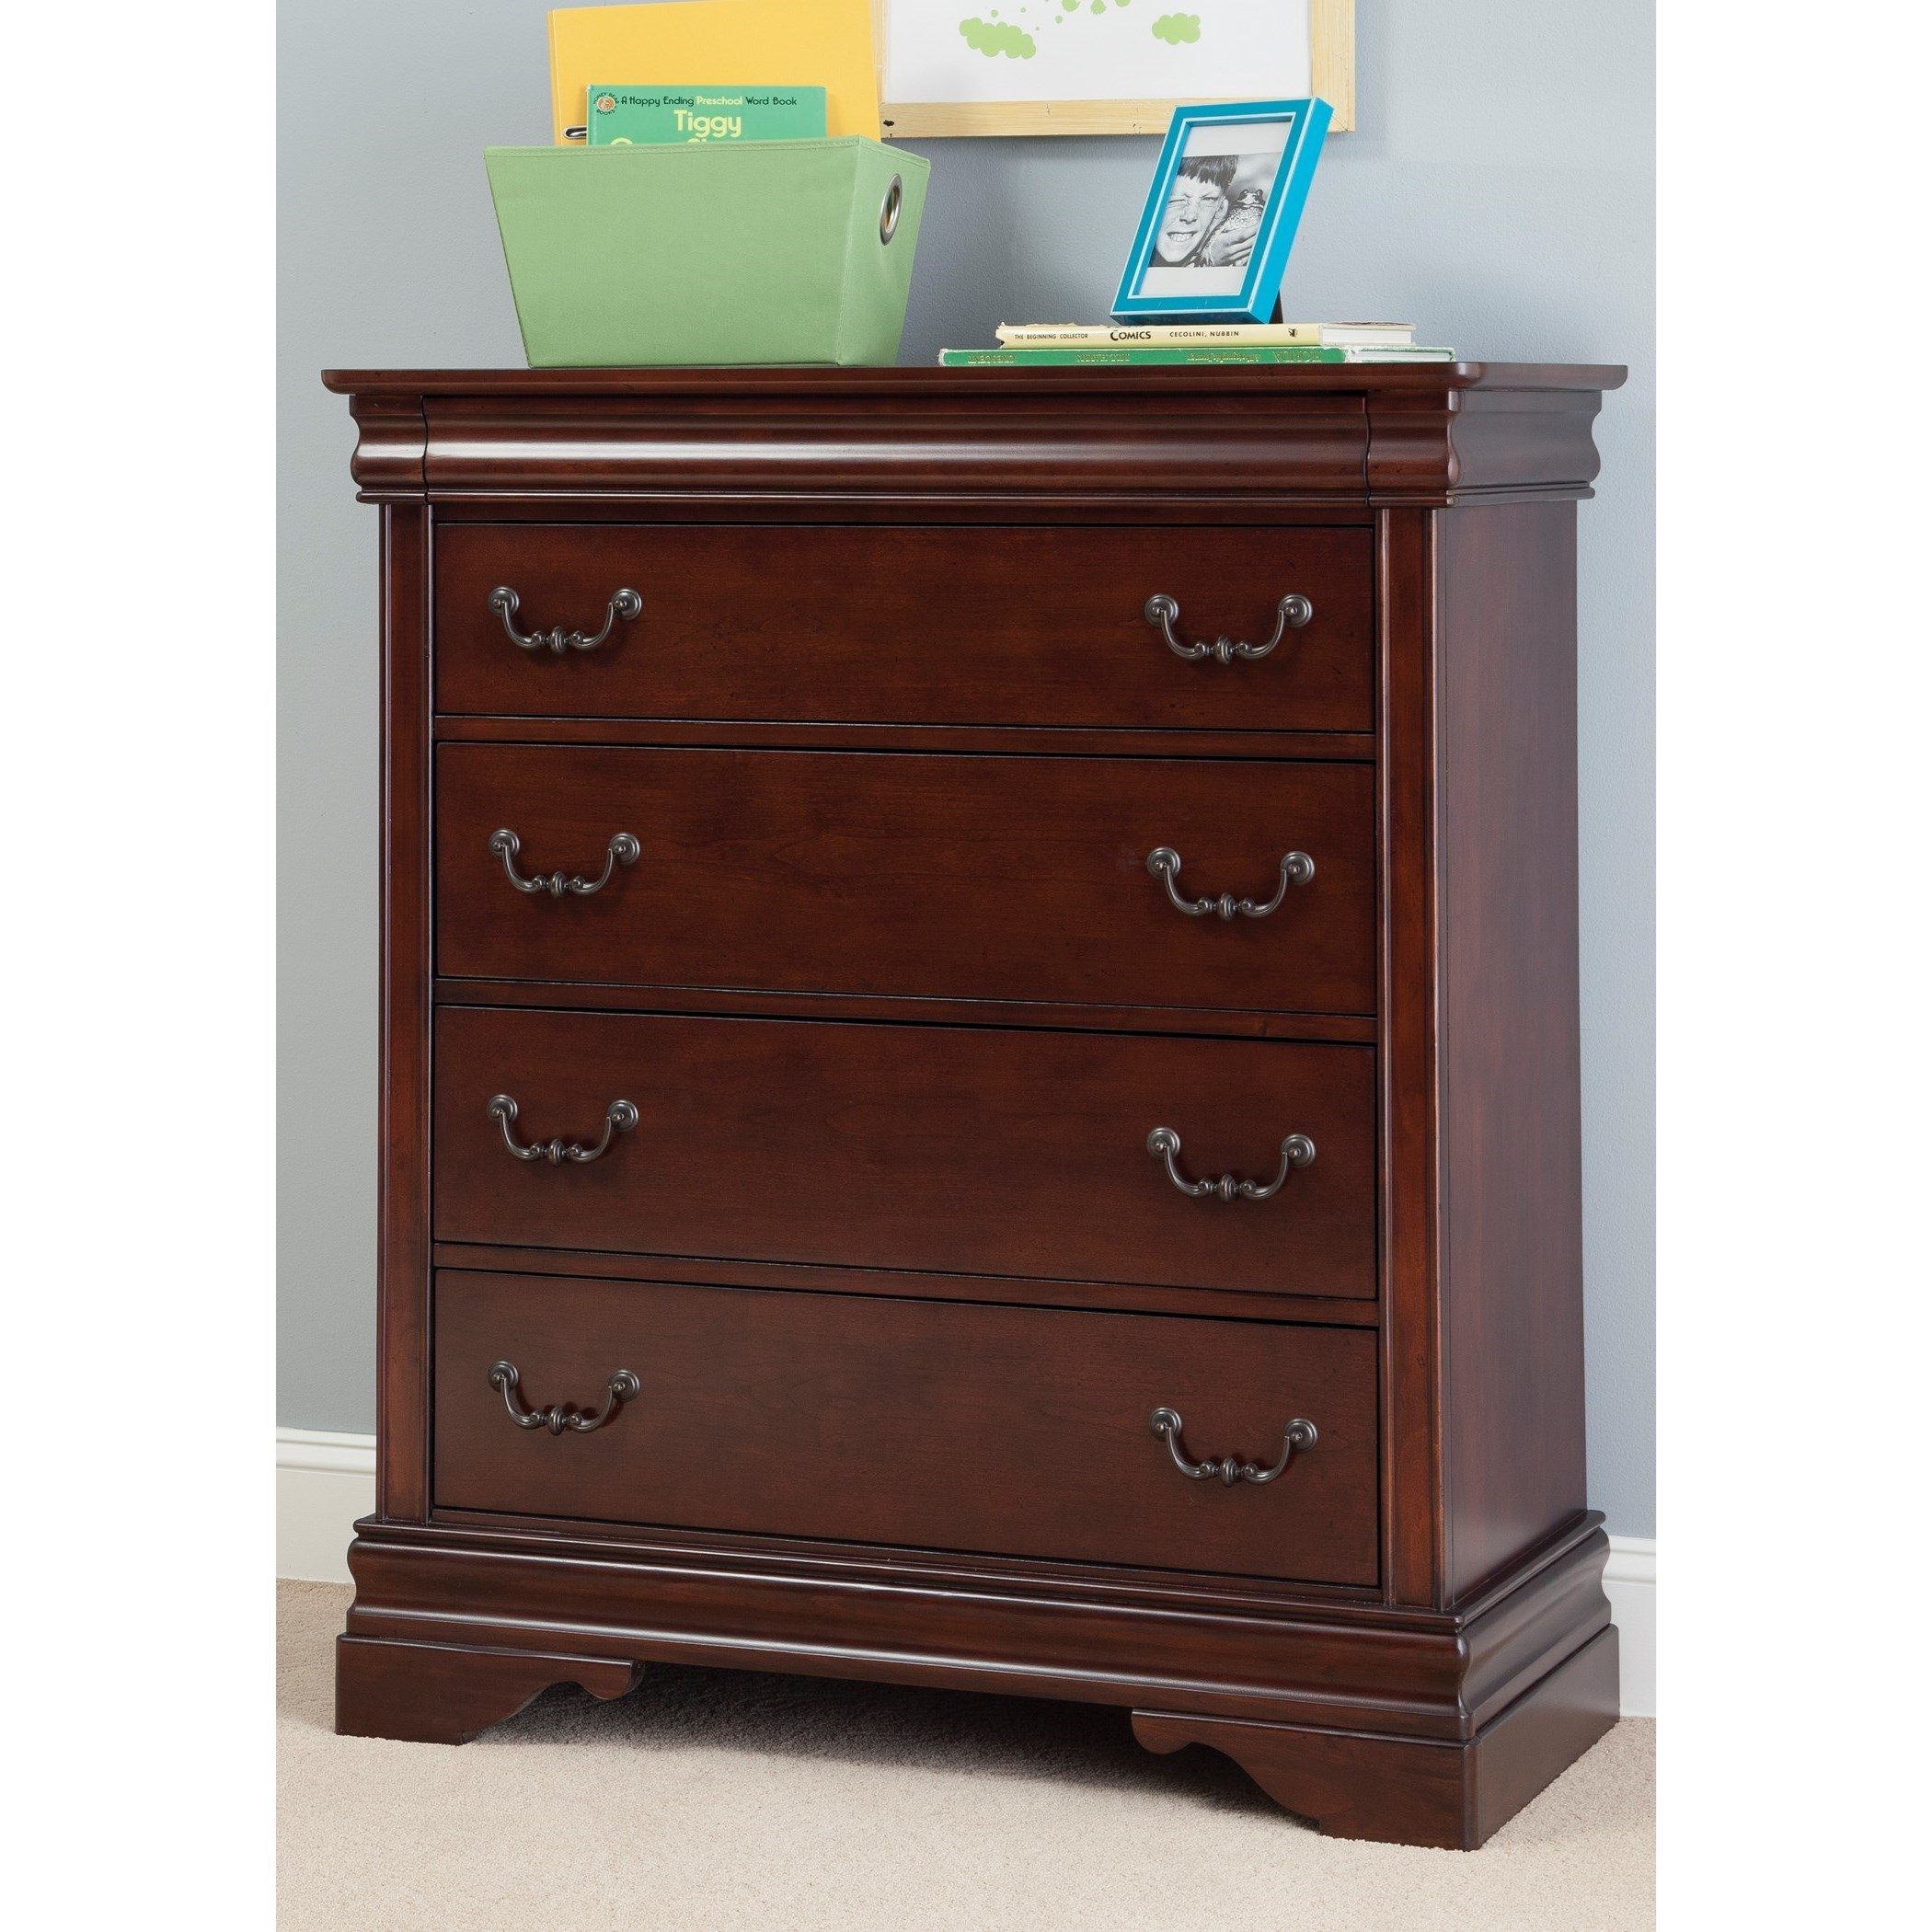 Carriage Court Youth Five Drawer Chest by Libby at Walker's Furniture